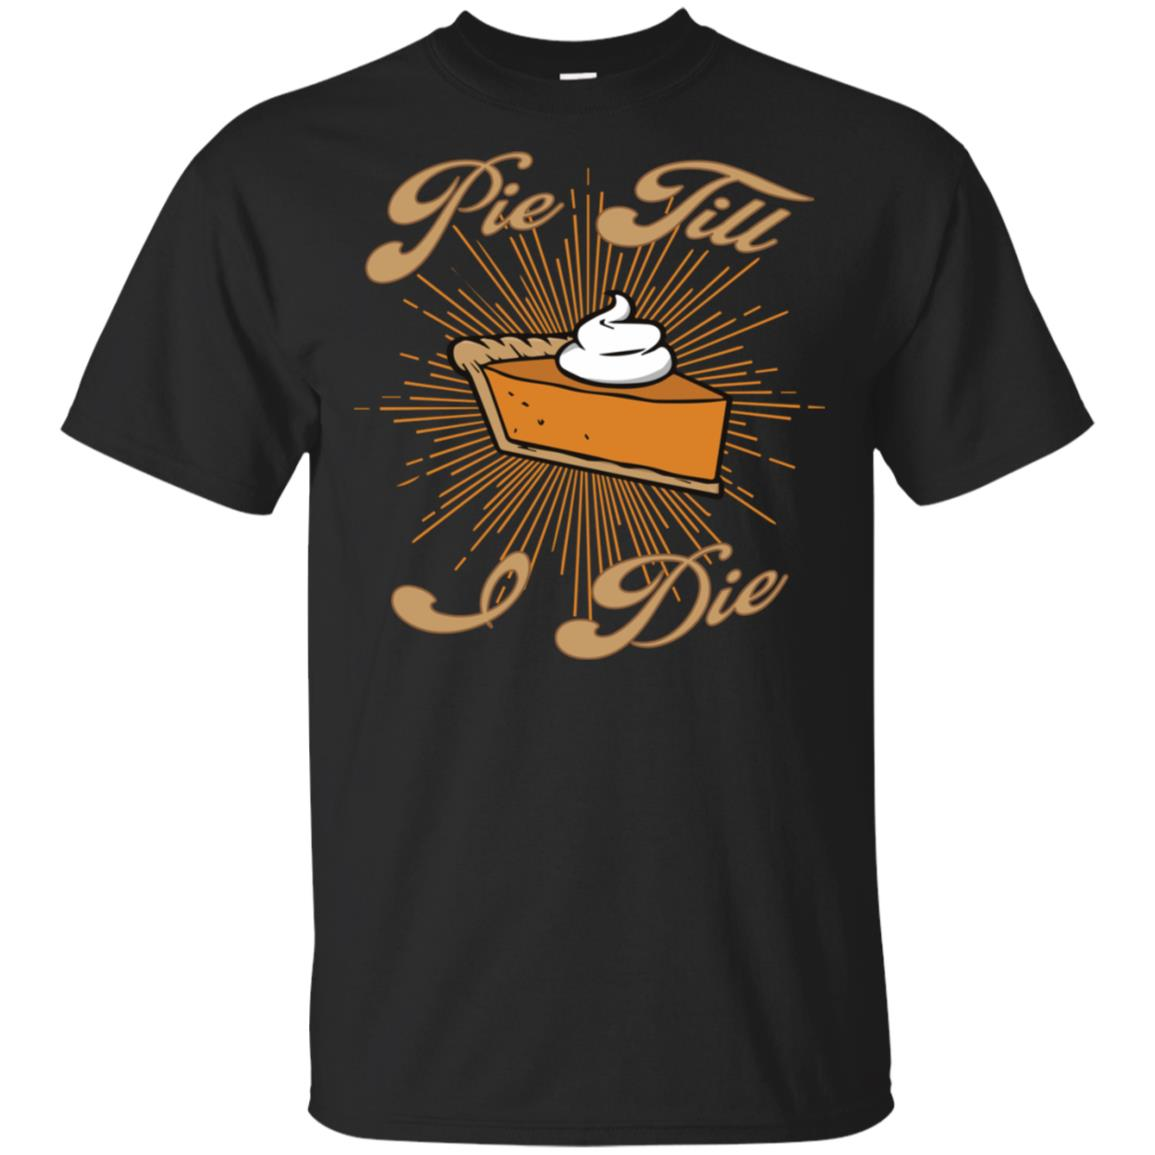 Pie Till I Die – Funny Thanksgiving Day Graphic Design Unisex Short Sleeve